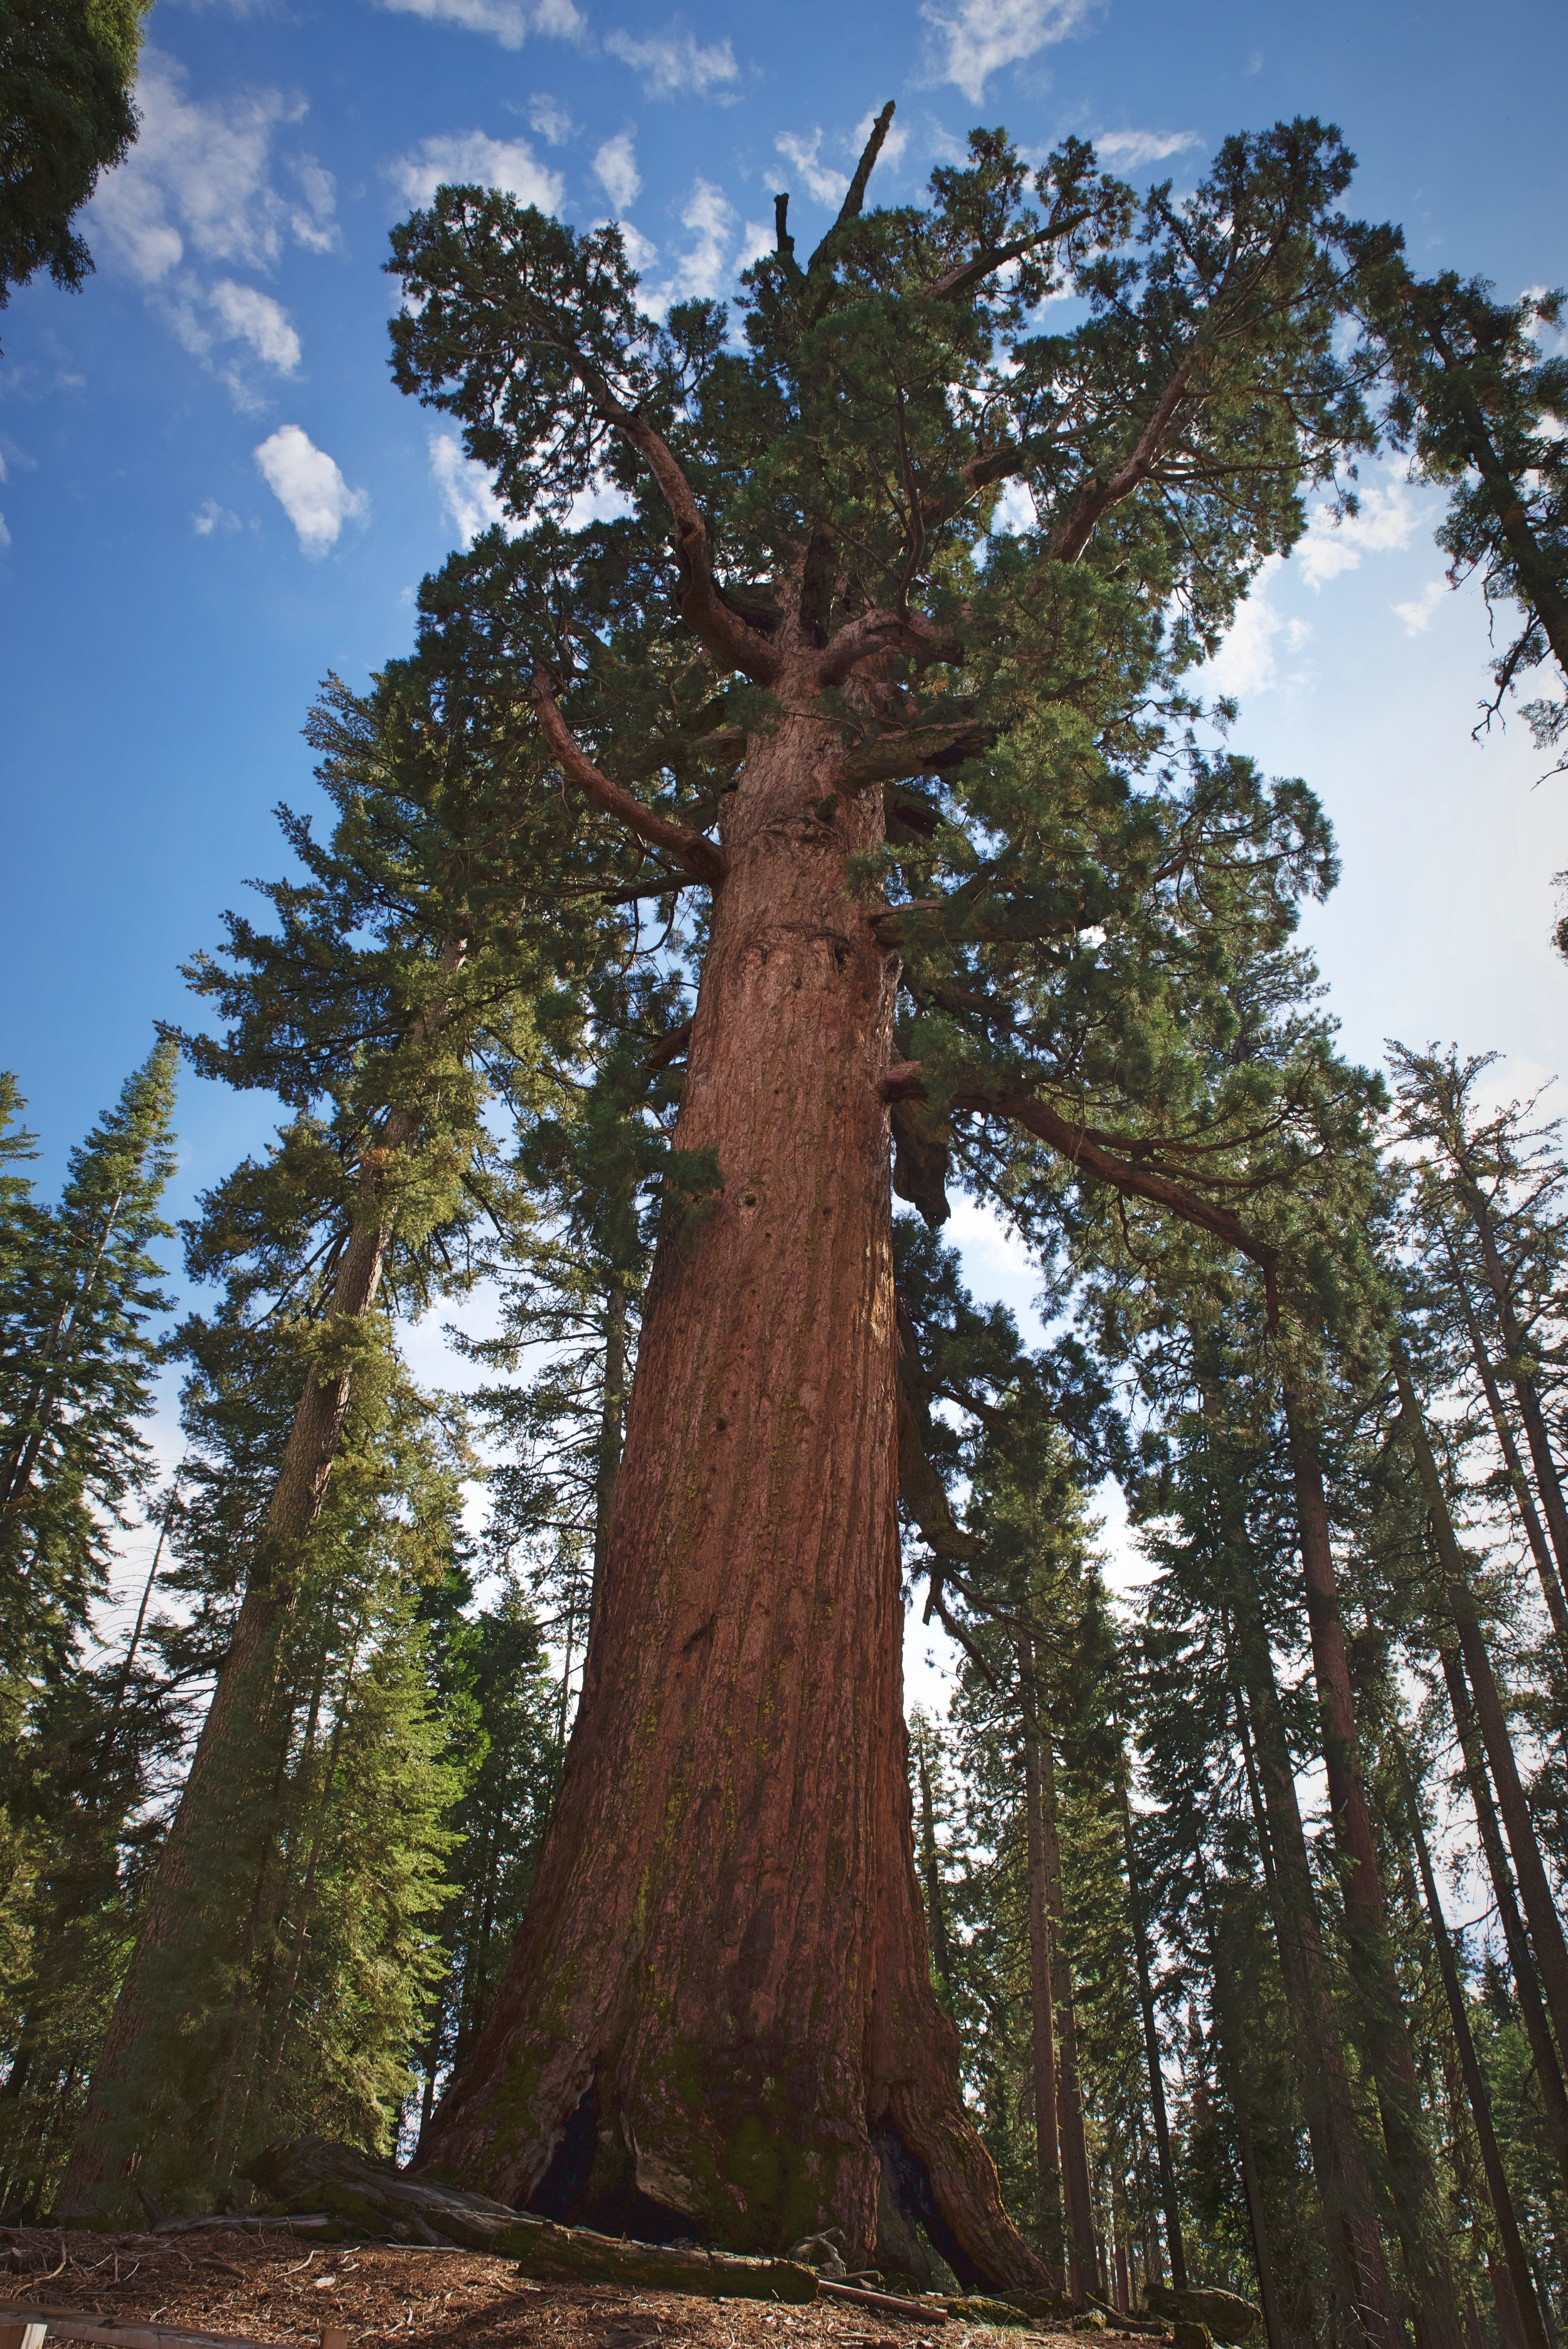 The Grizzly Giant has some branches that are as big as many of the trees surrounding it.